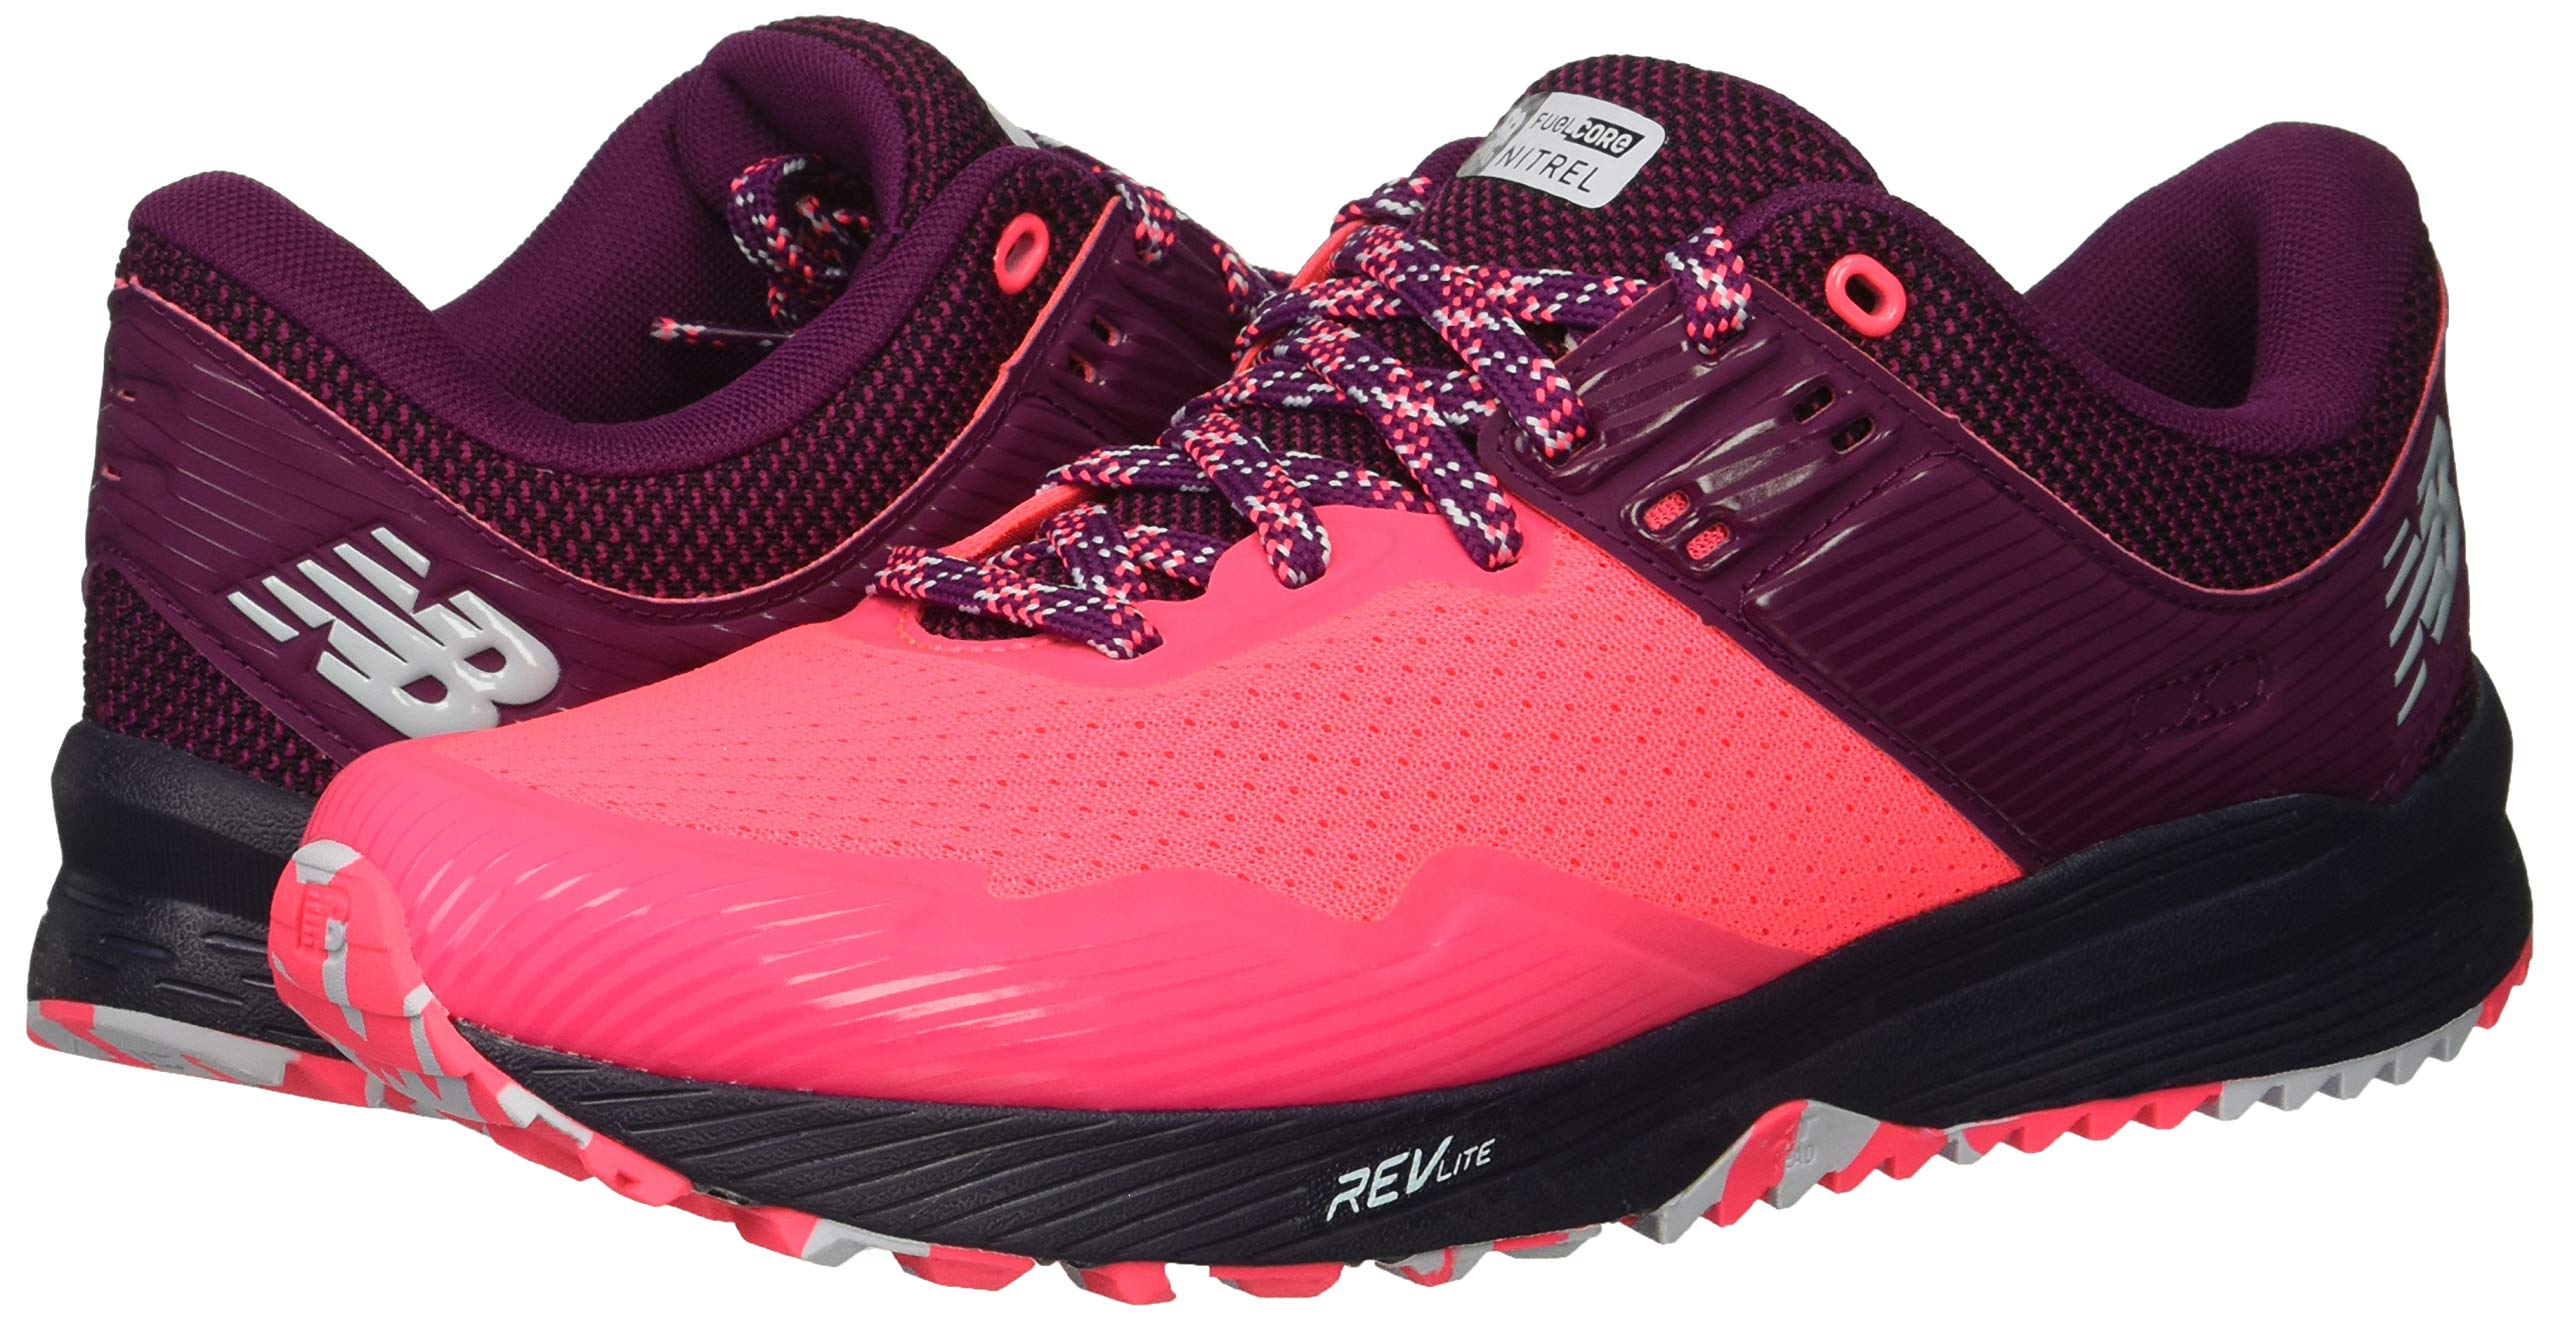 New Balance Women's Nitrel V2 FuelCore Trail Running Shoe Pink zing/Claret/Pigment 5 B US by New Balance (Image #6)